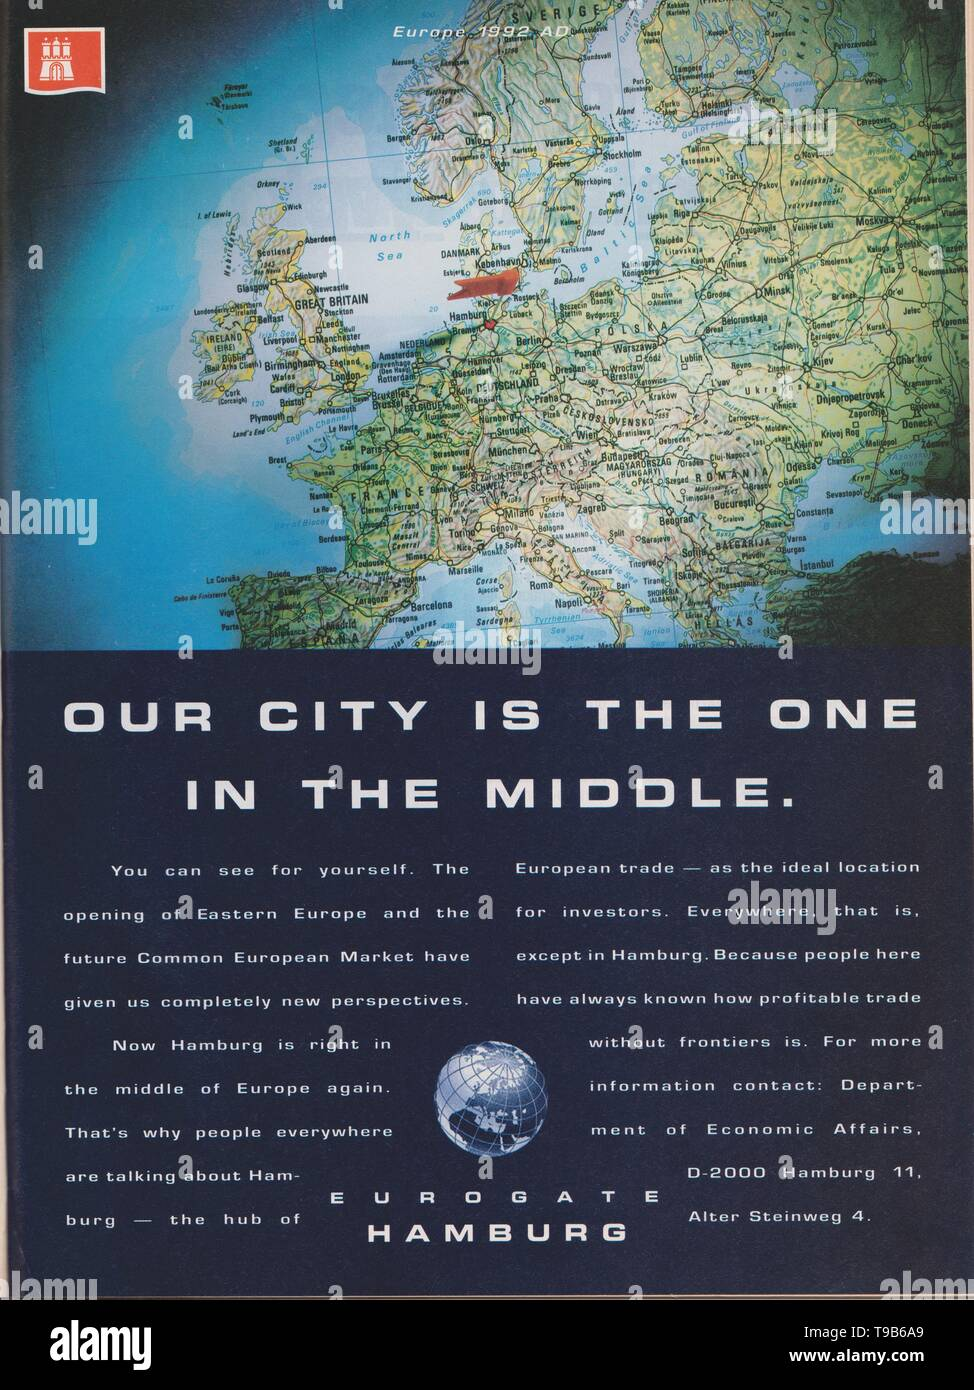 Lodz, Poland, April 14, 2019 poster advertising Eurogate Hamburg in magazine from 1992, Our city is the one in the middle slogan, advertisement - Stock Image